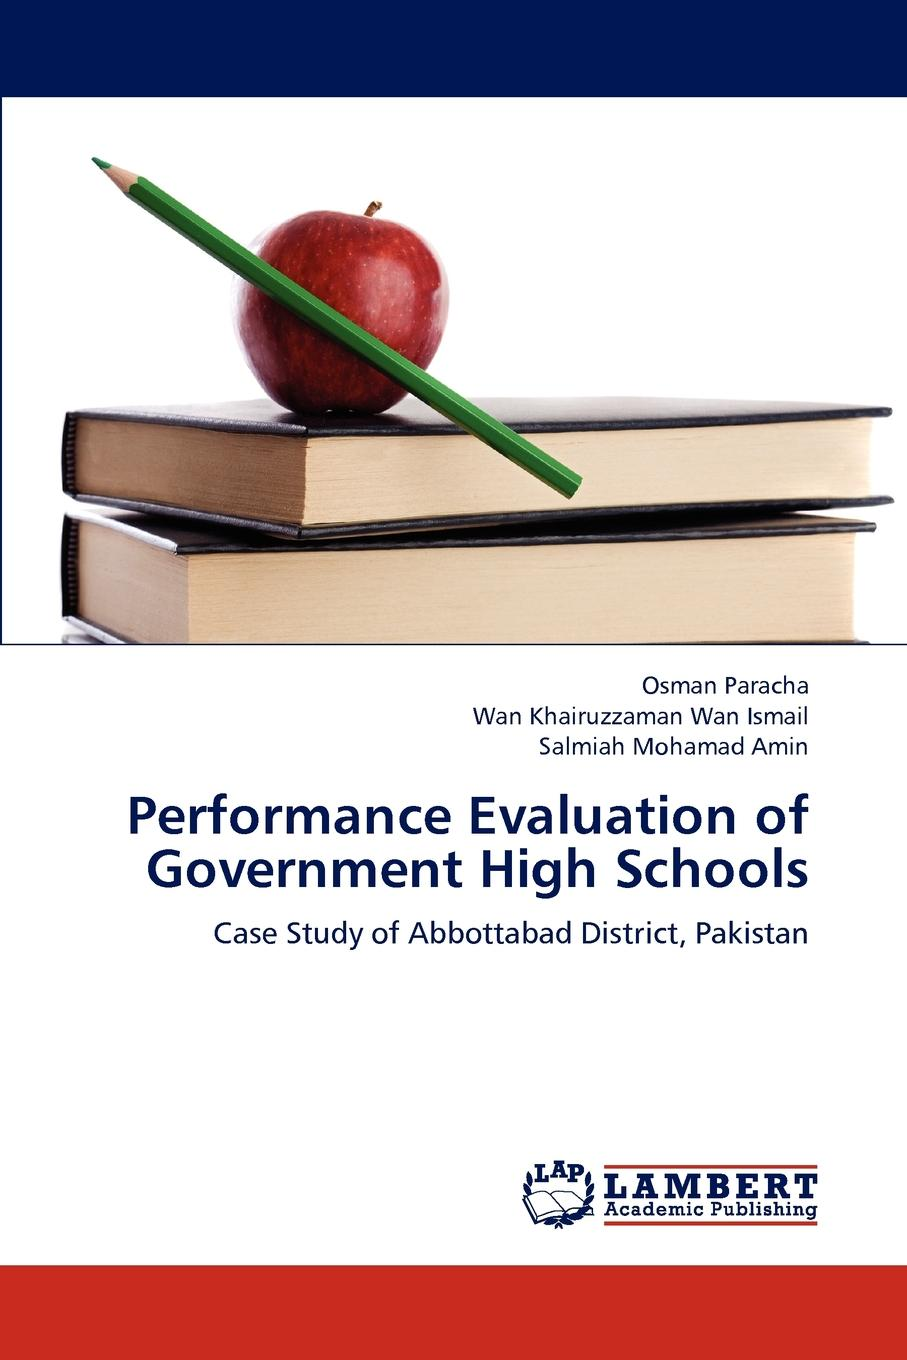 Osman Paracha, Wan Khairuzzaman Wan Ismail, Salmiah Mohamad Amin Performance Evaluation of Government High Schools moseley james l handbook of improving performance in the workplace measurement and evaluation